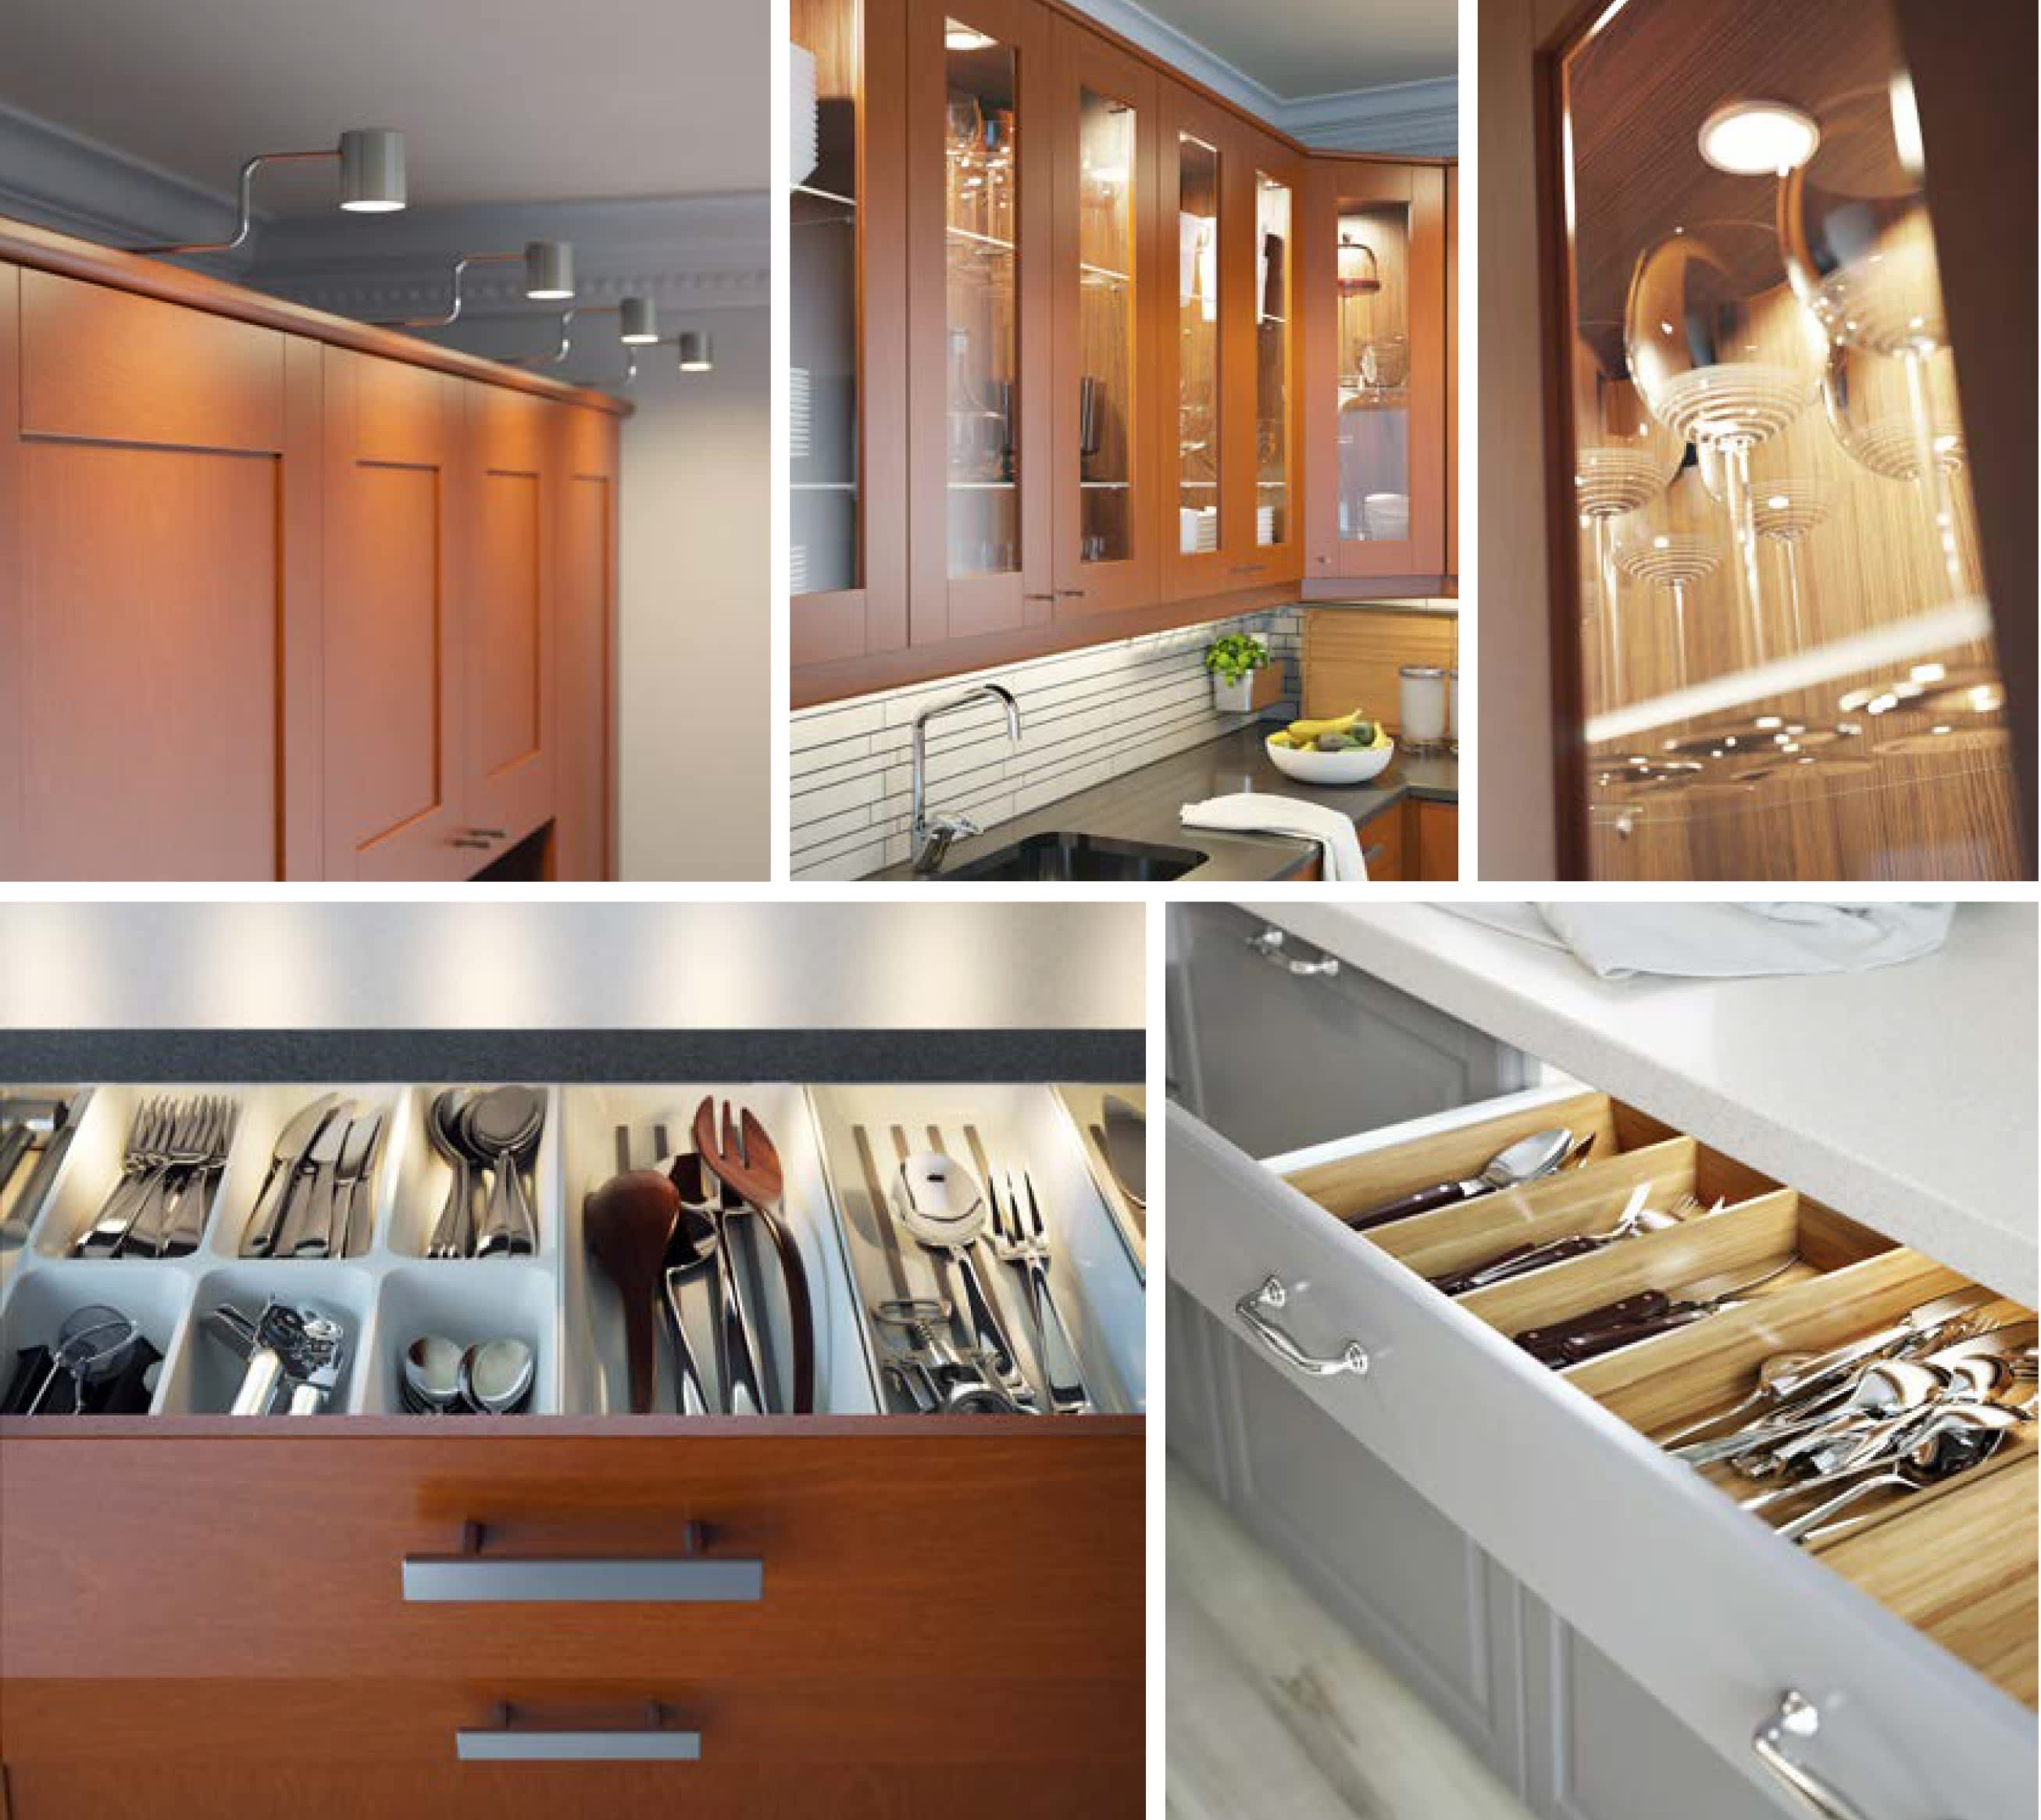 Ikea Kitchen Cabinets: IKEA's New SEKTION Cabinets: Sizes, Prices & Photos!